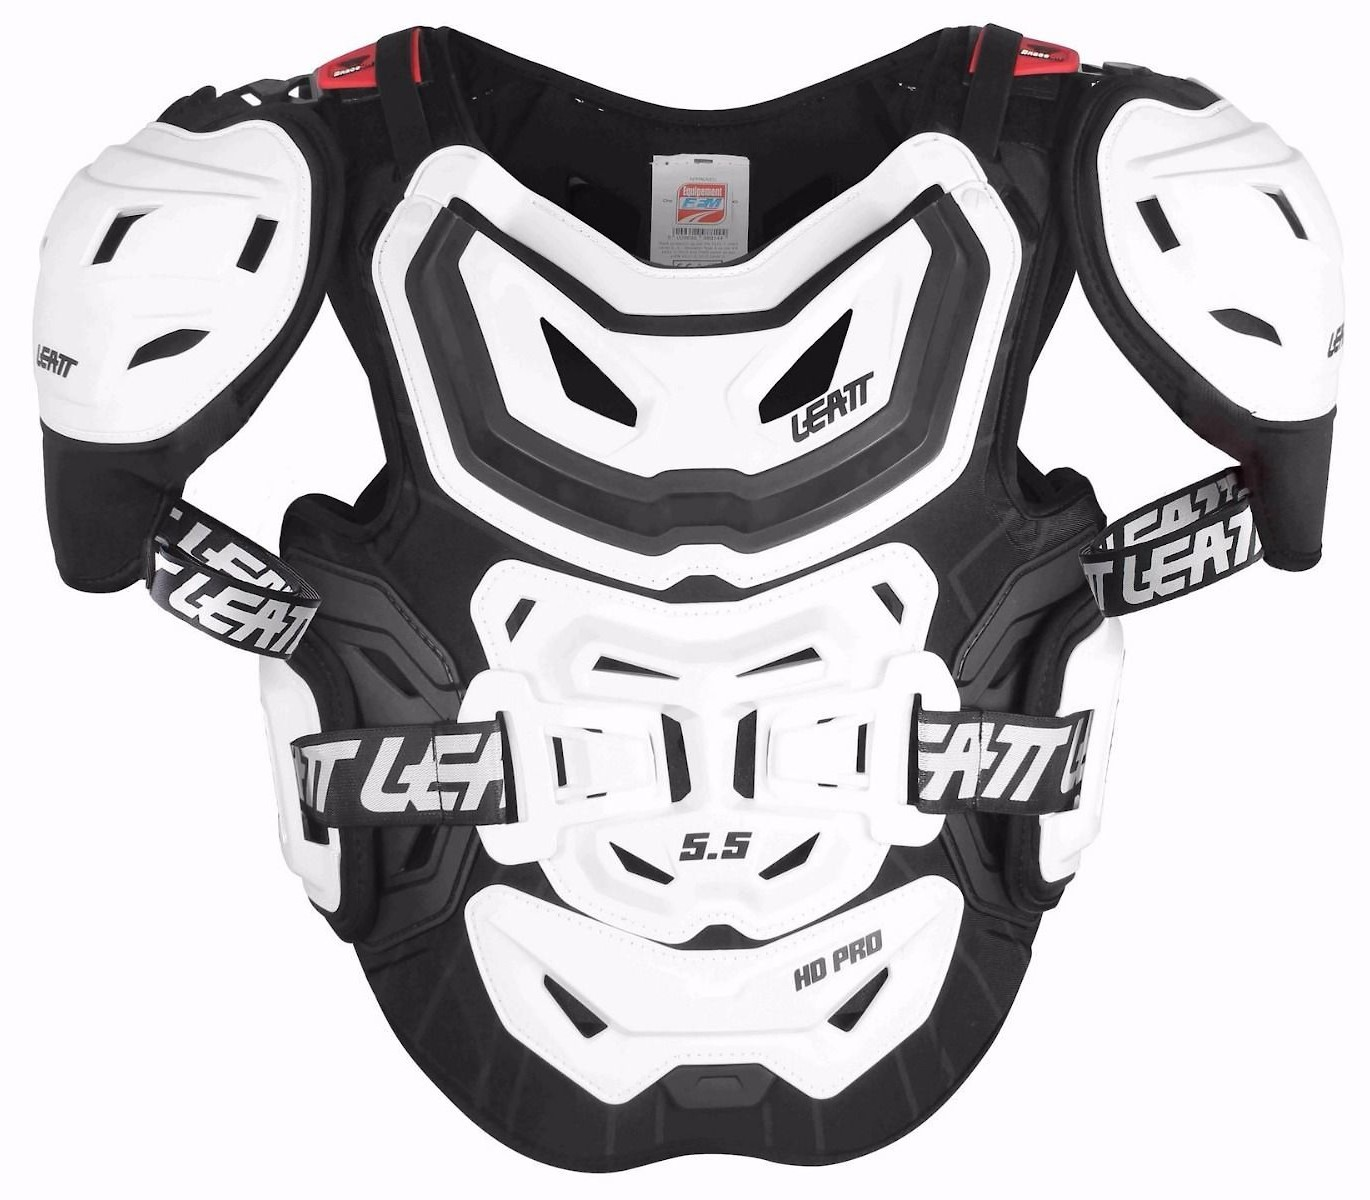 chest_protector_5.5_pro_hd_white_2__3